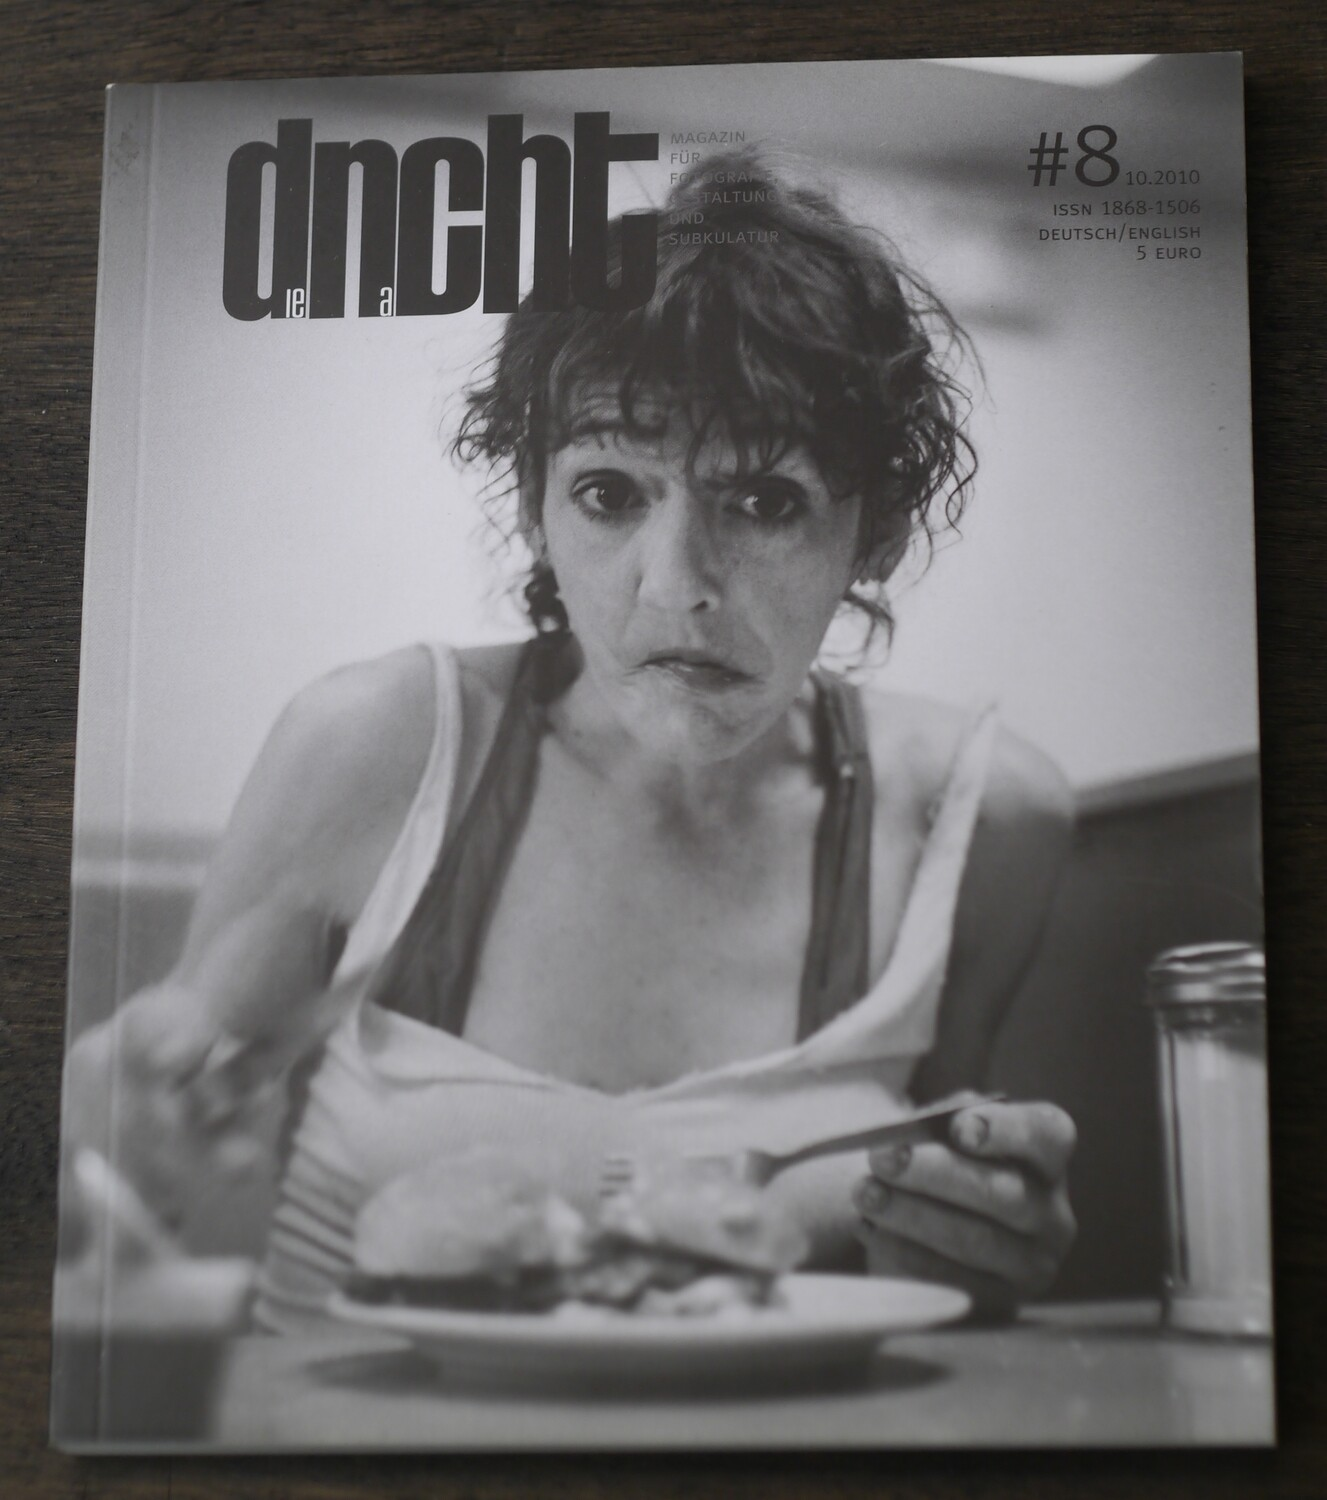 DIE NACHT magazine Special double pack #8 & #14